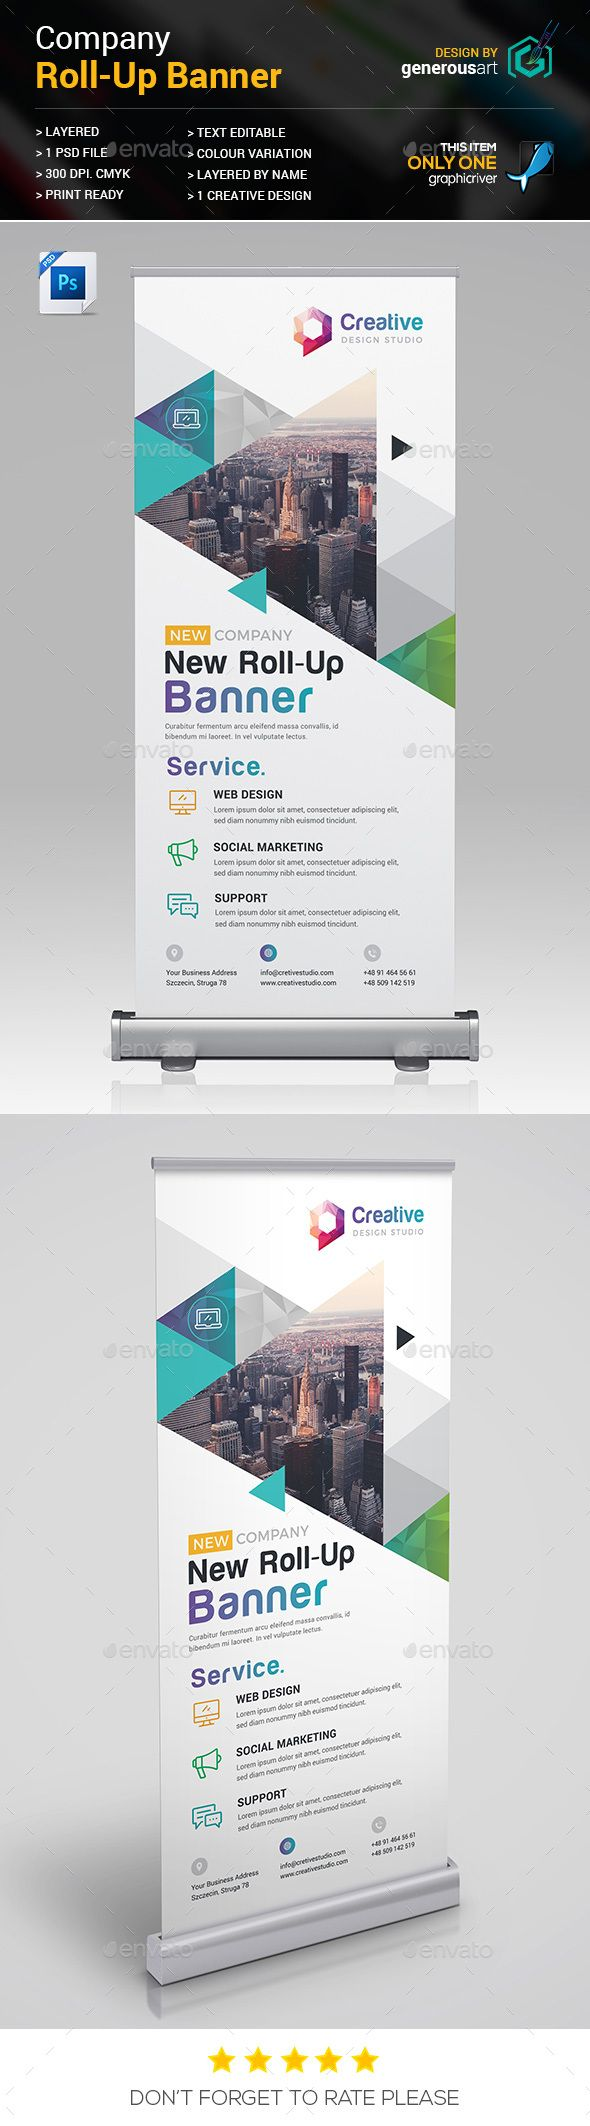 Company Rollup Banner — Photoshop PSD #template #rollup banner • Available here → https://graphicriver.net/item/company-rollup-banner/20694745?ref=pxcr